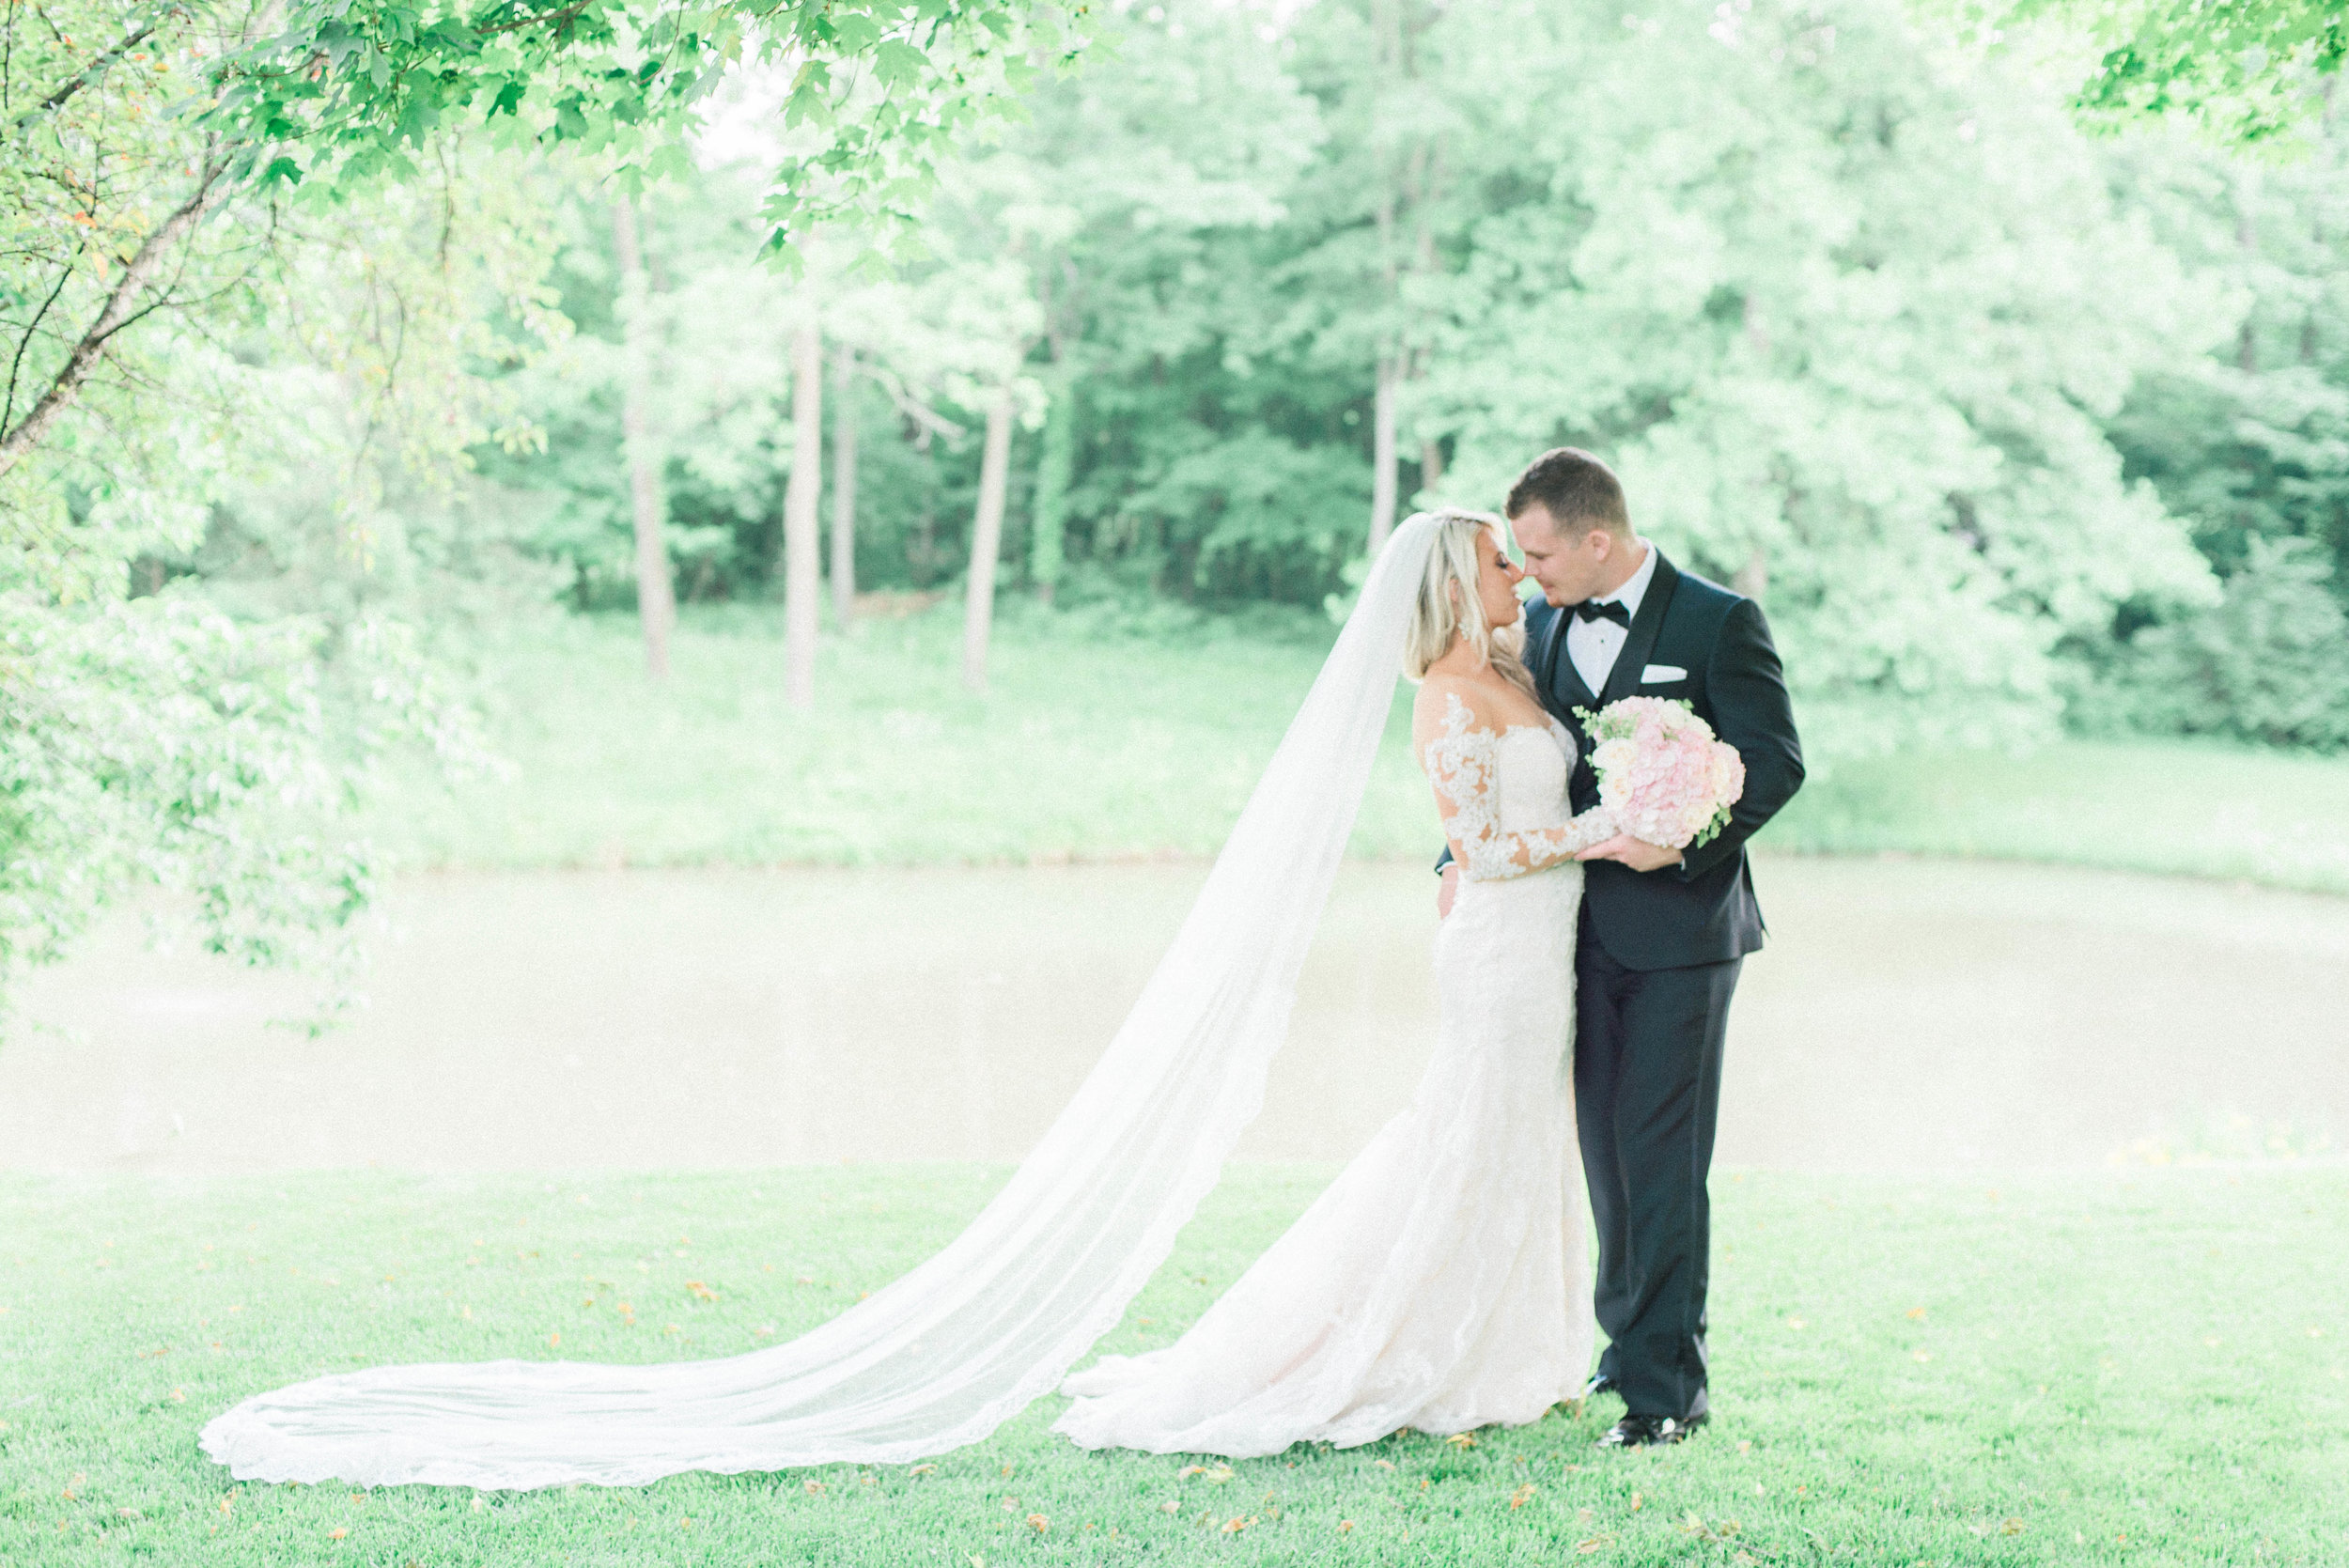 SUMMER - We are VERY happy with our photos! I LOVE that I get to relive one of the most memorable moments in our life through your lens. I can't even choose which one is my favorite...there are just TOO many!WEDDING | BRIDAL